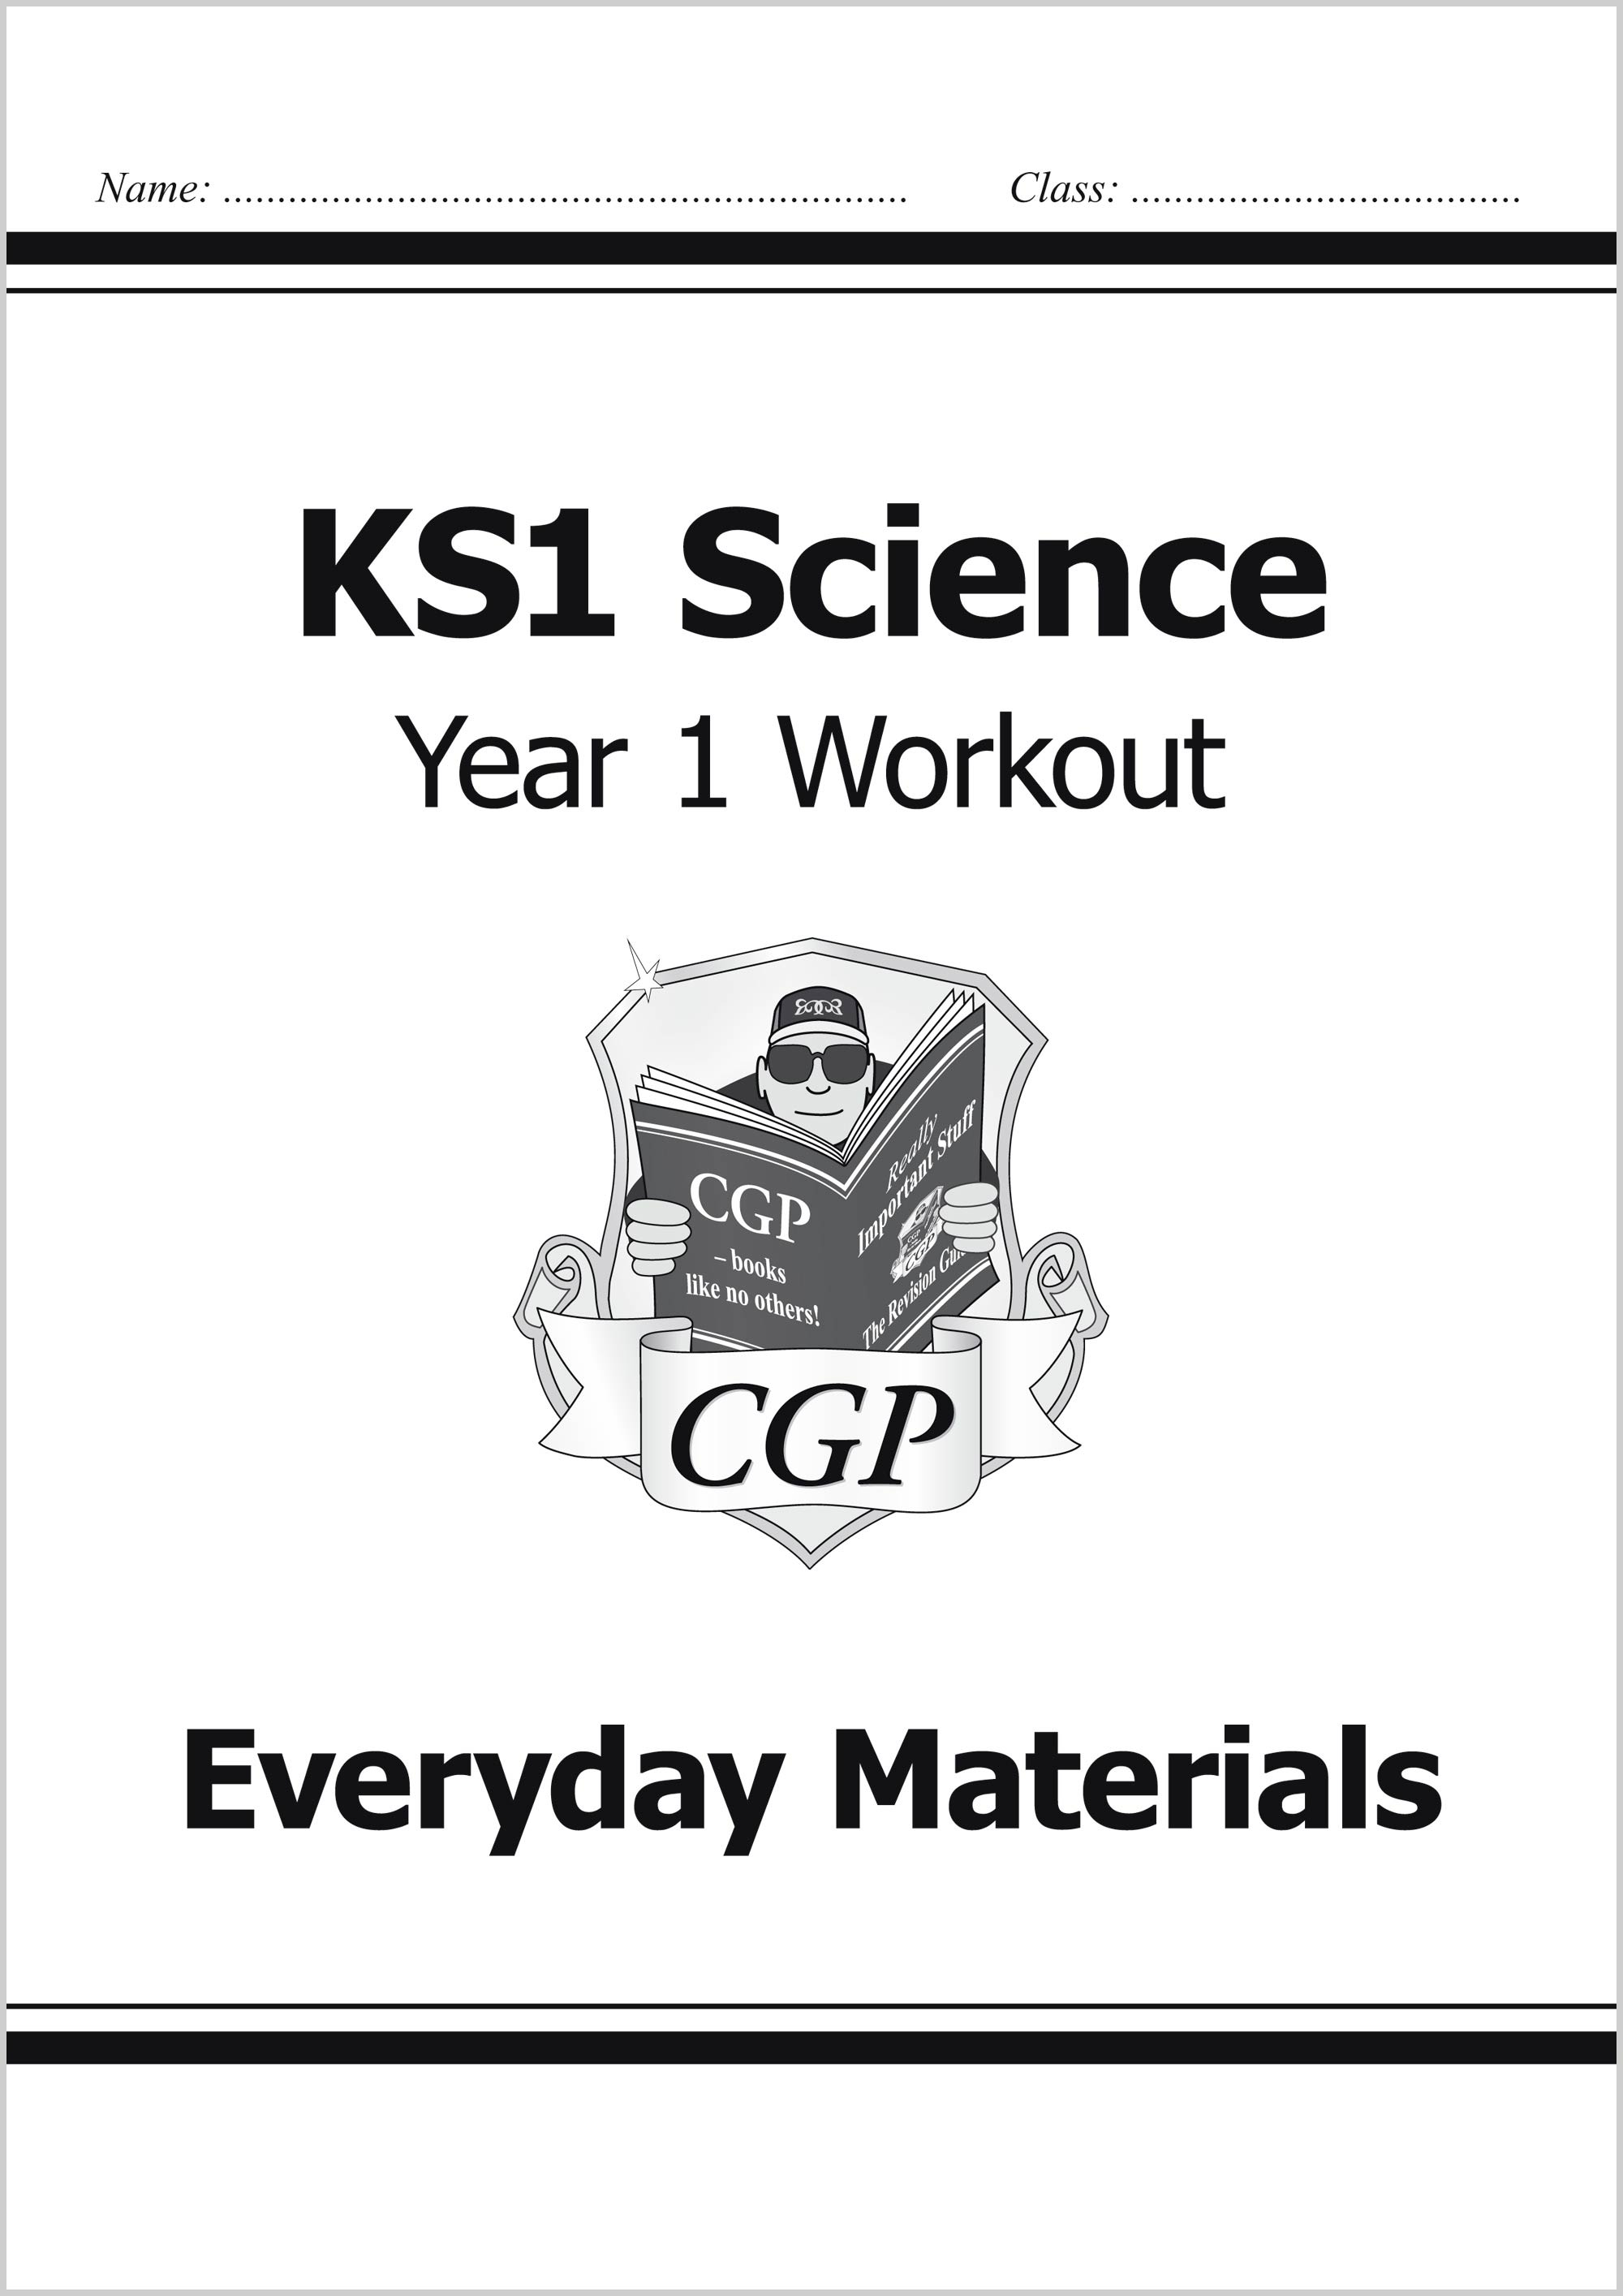 S1C11 - KS1 Science Year One Workout: Everyday Materials